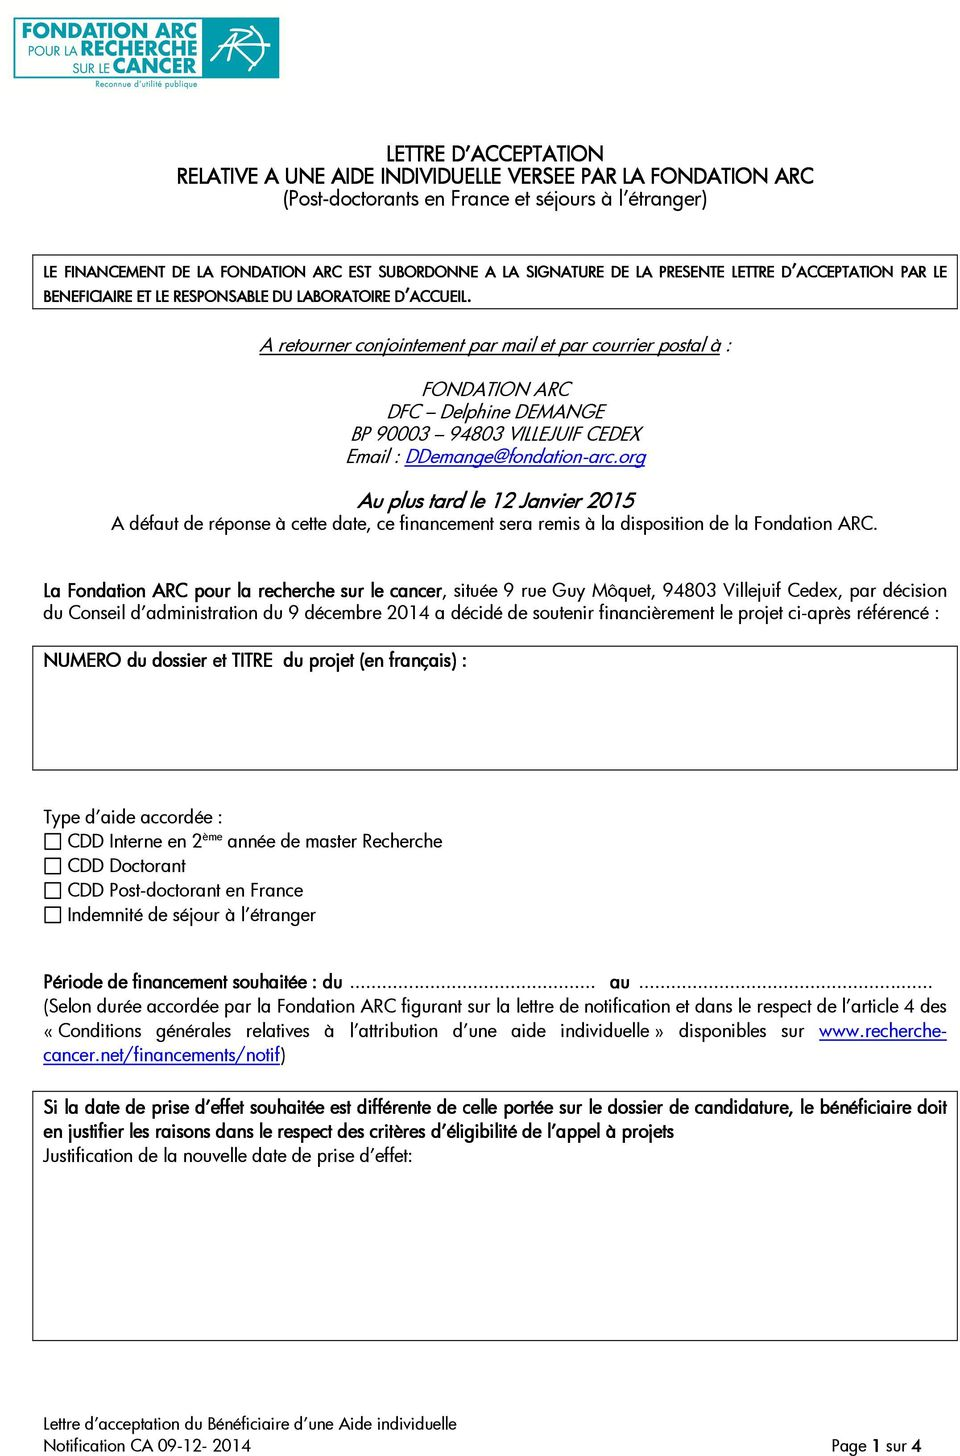 Lettre D Acceptation Relative A Une Aide Individuelle Versee